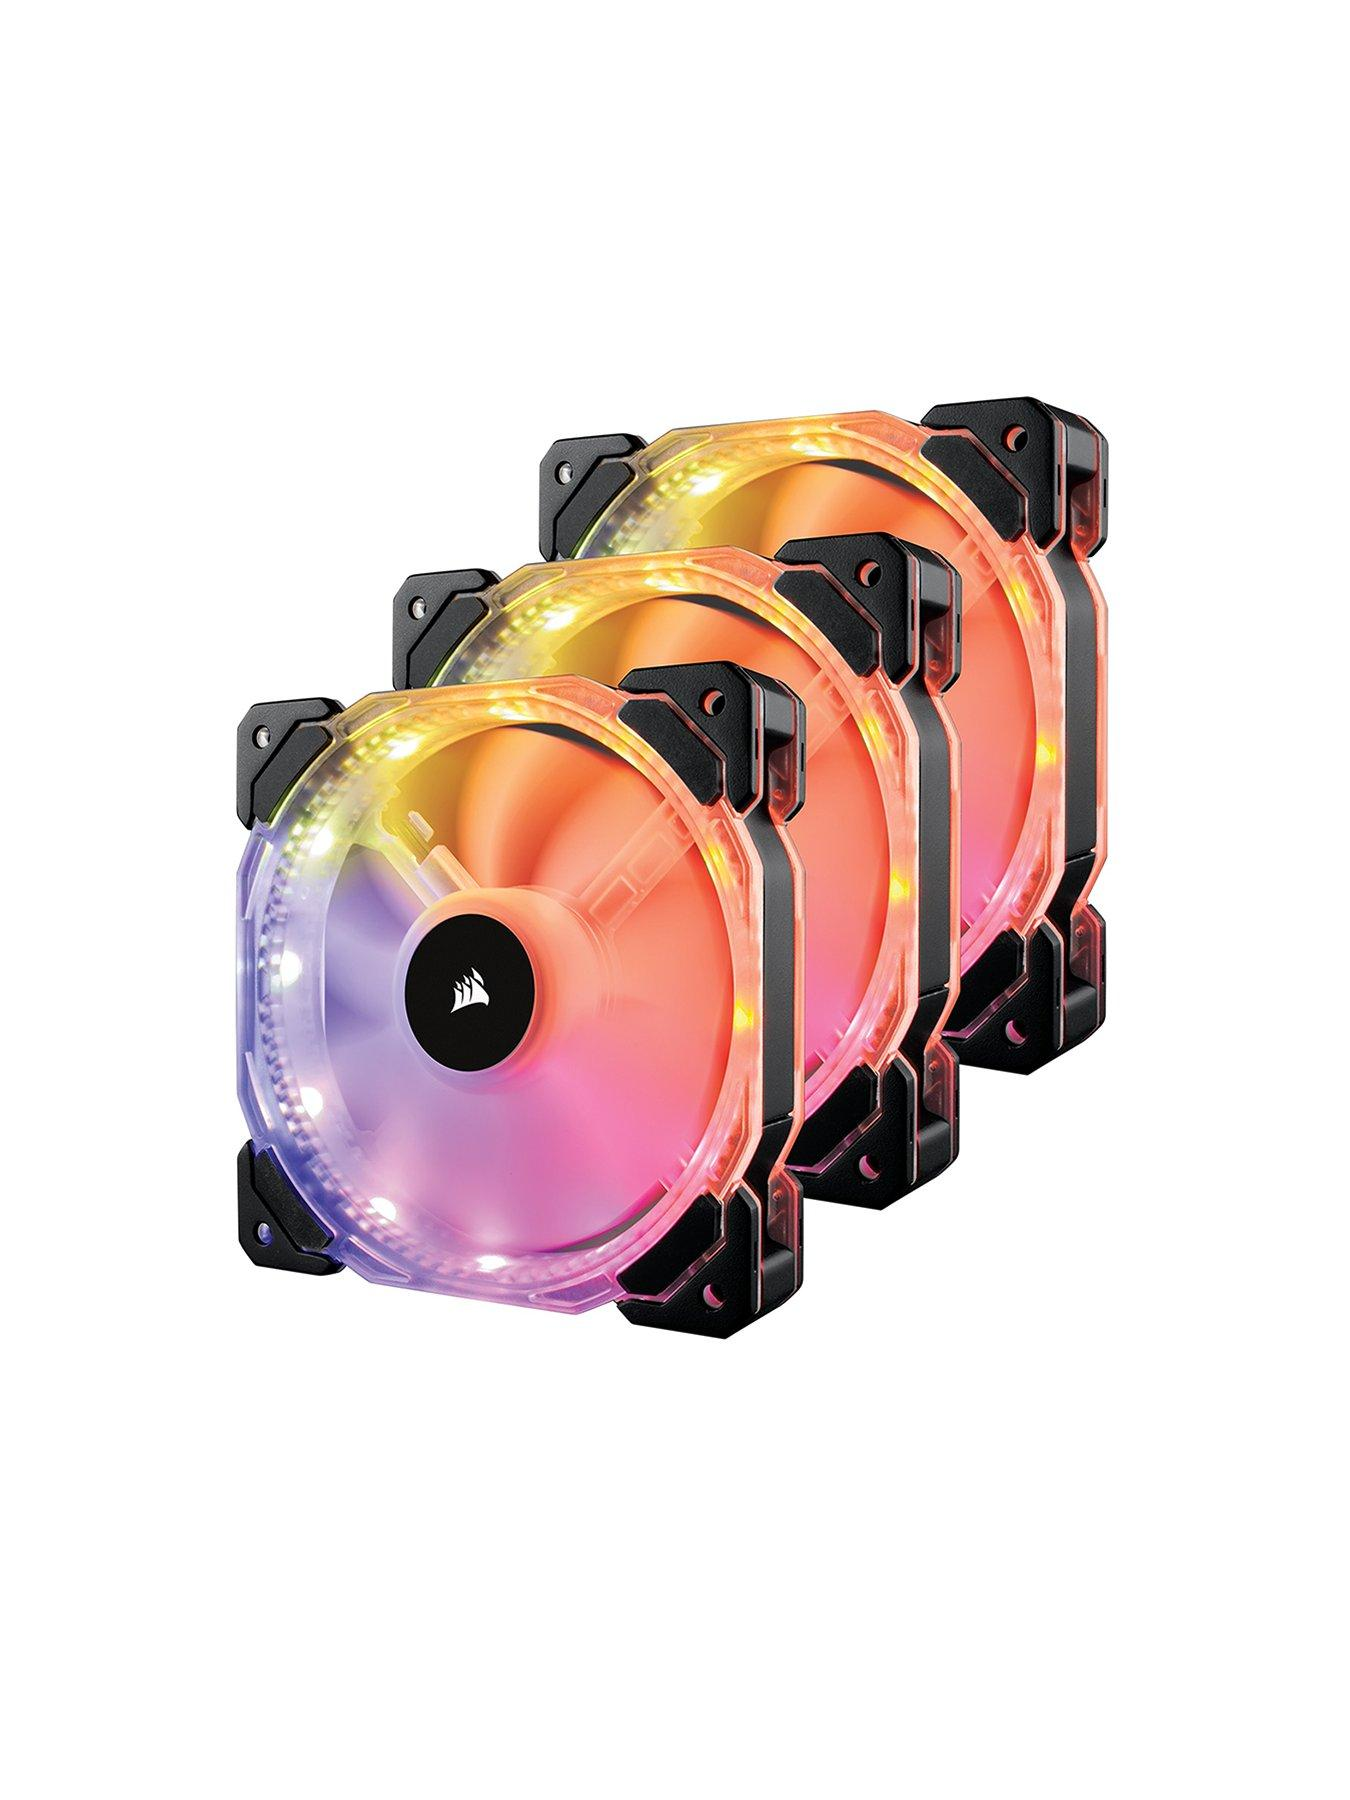 Compare prices for Corsair Hd120 Rgb Individually Addressable Led 3-Pack Static Pressure Fan With Controller